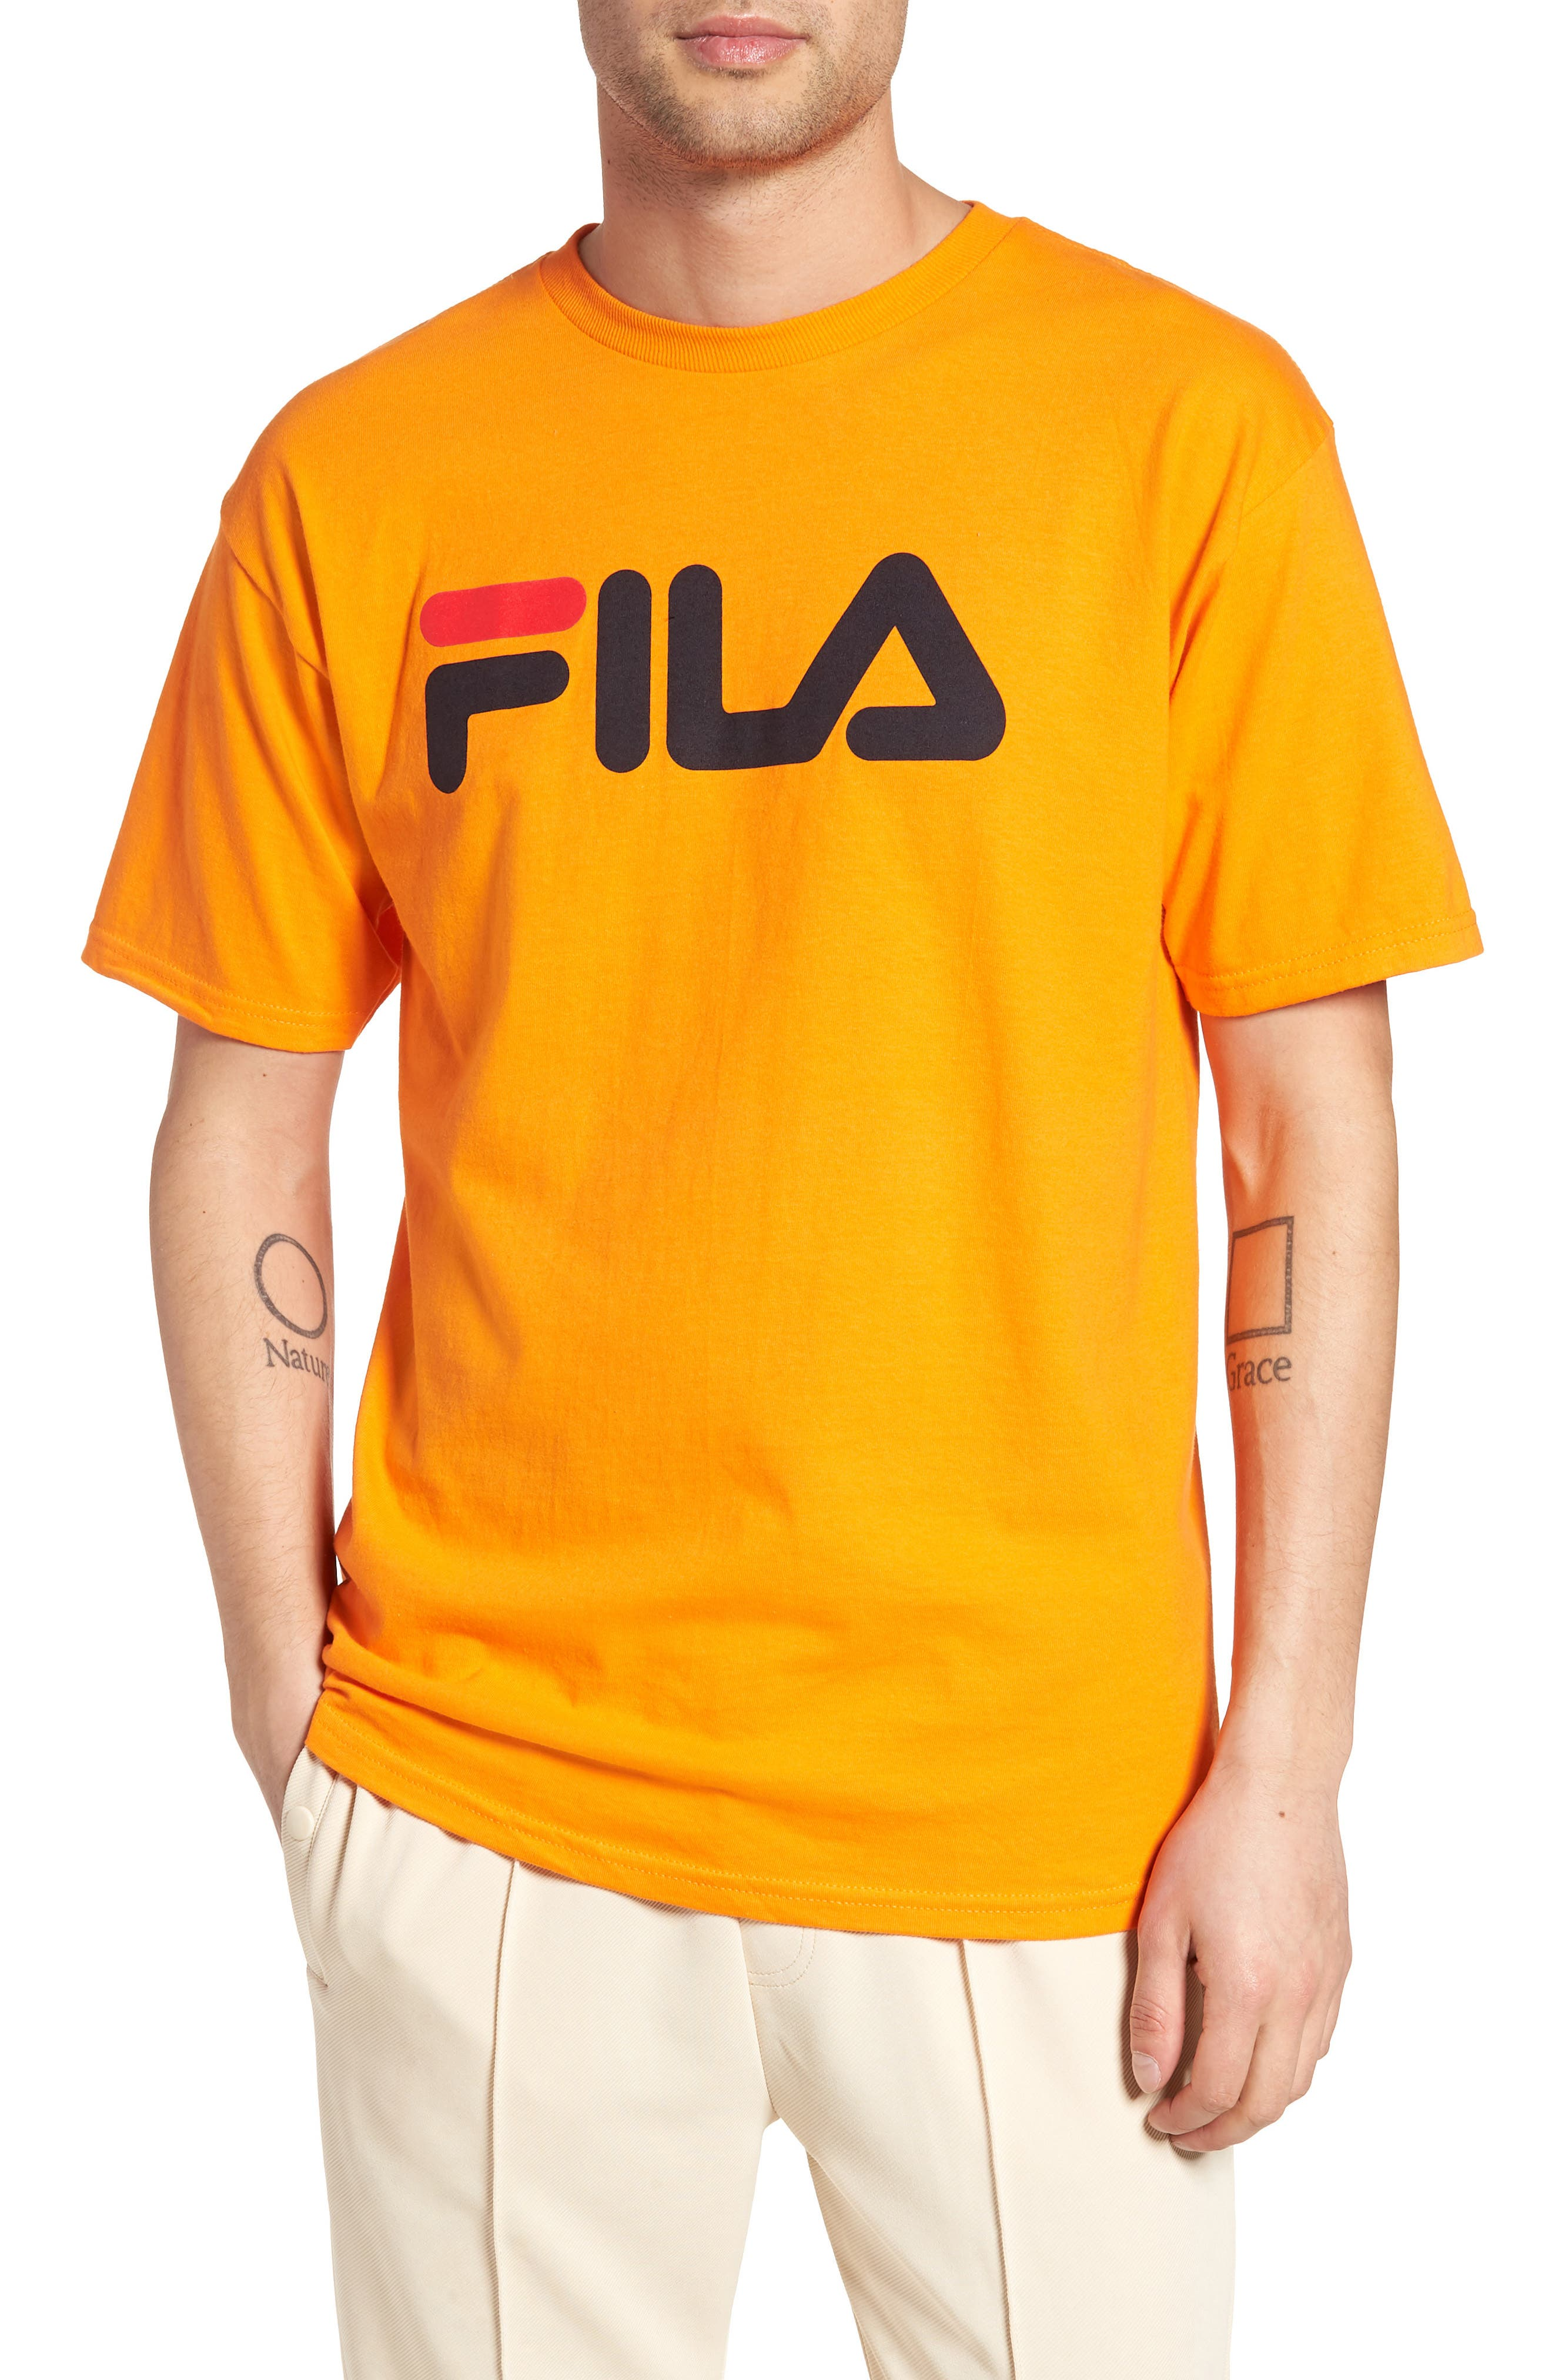 USA Graphic T-Shirt,                         Main,                         color, 333